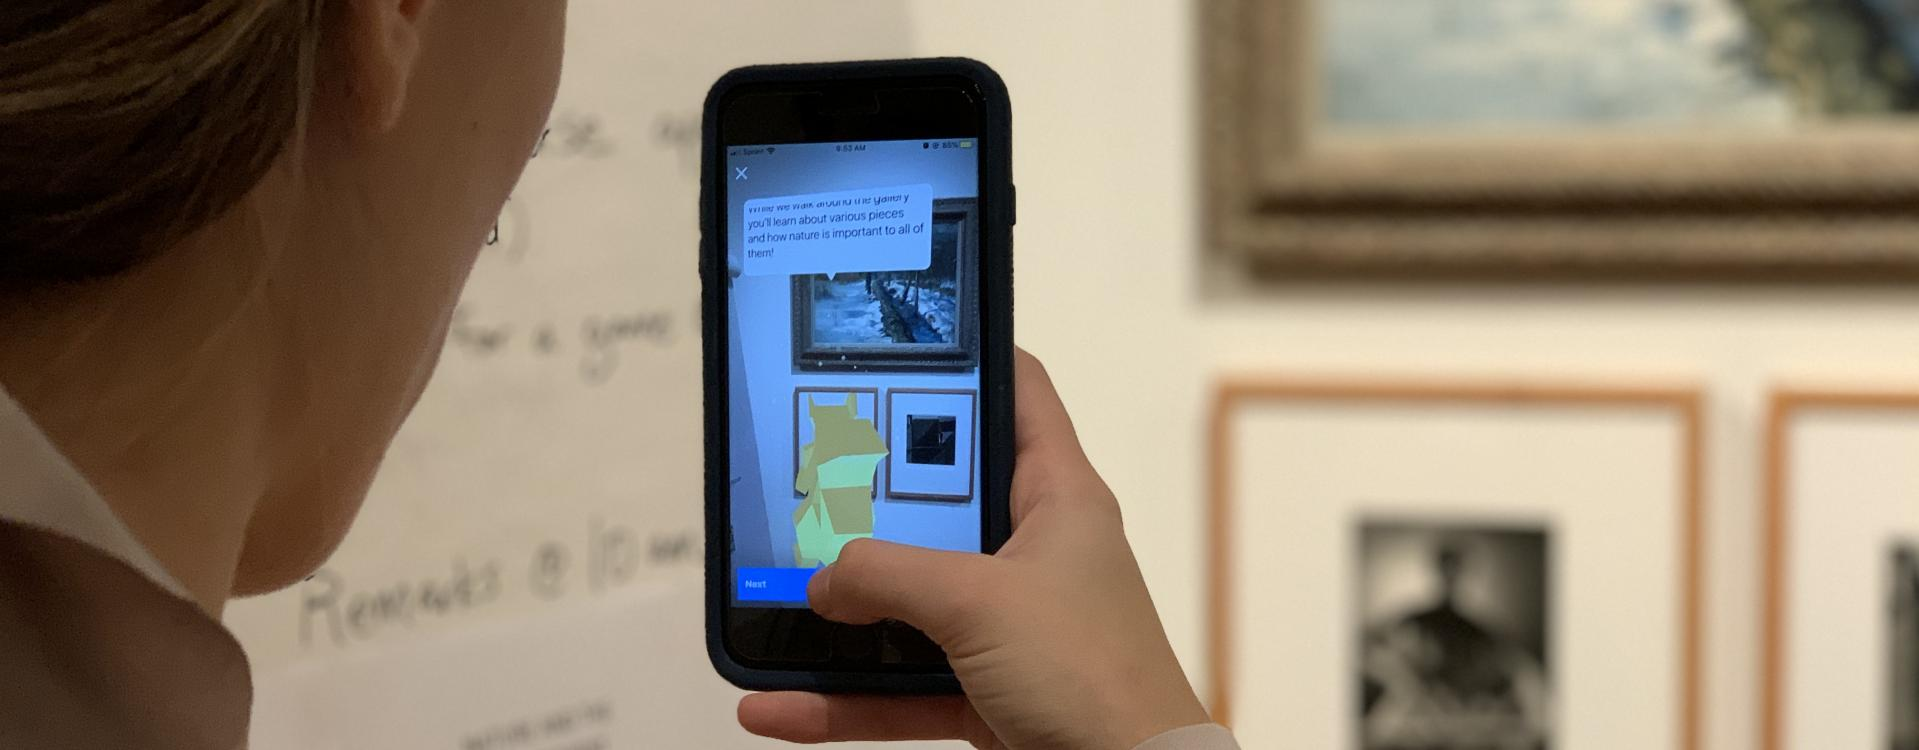 Lehigh students bring 21st century technology to ancient art